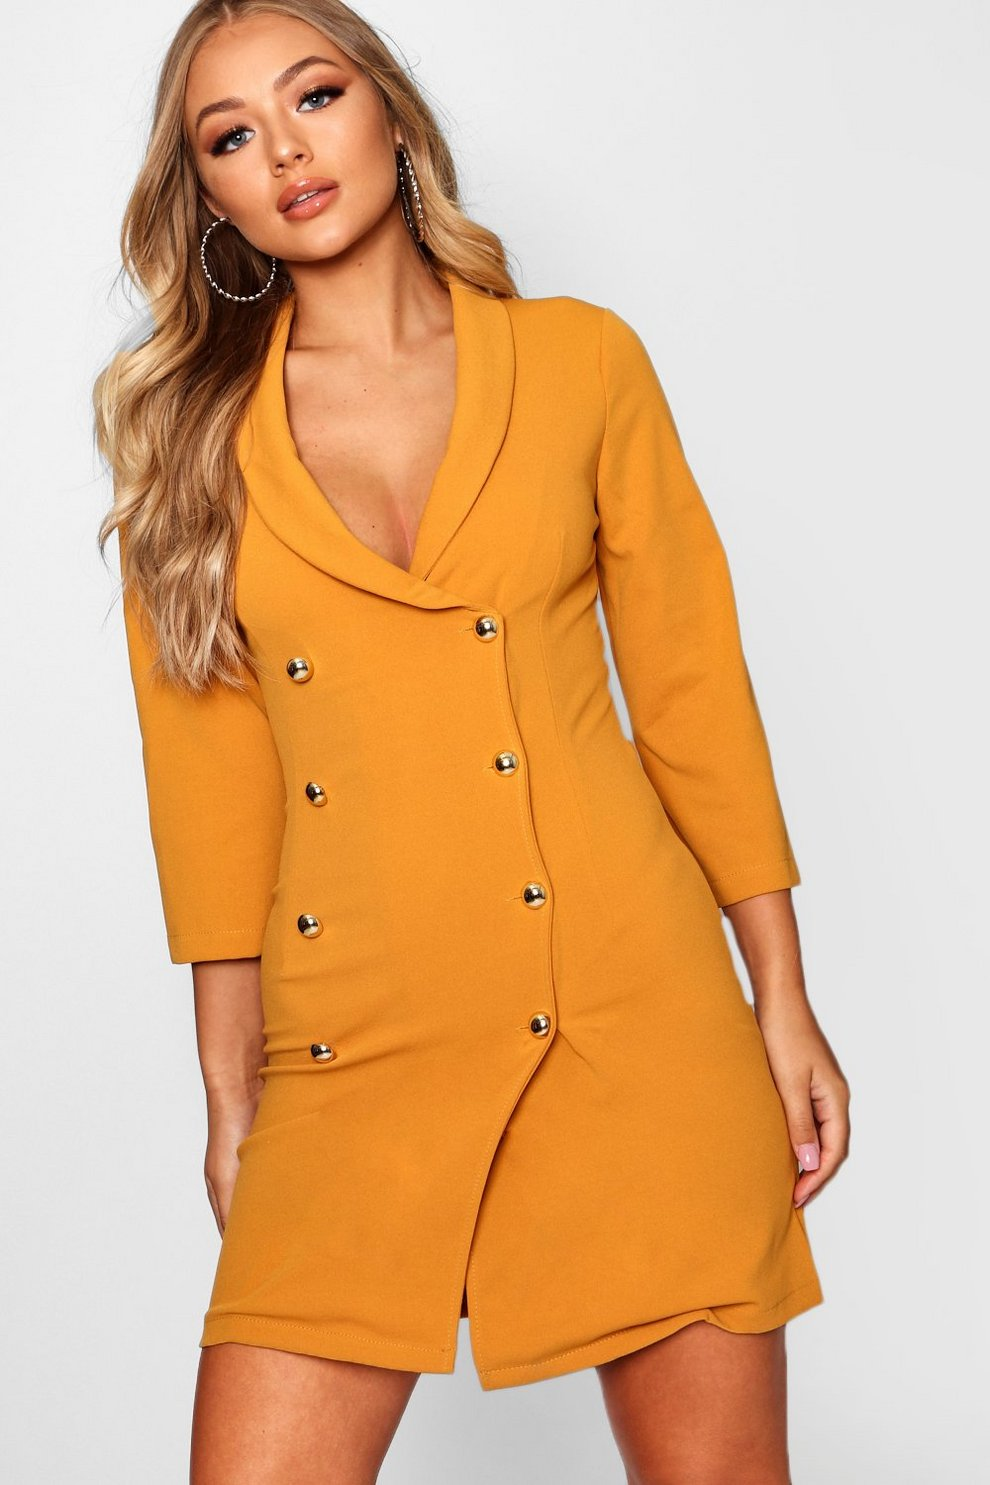 99be78eeaf049 Womens Mustard Double Breasted Gold Button Blazer Dress. Hover to zoom